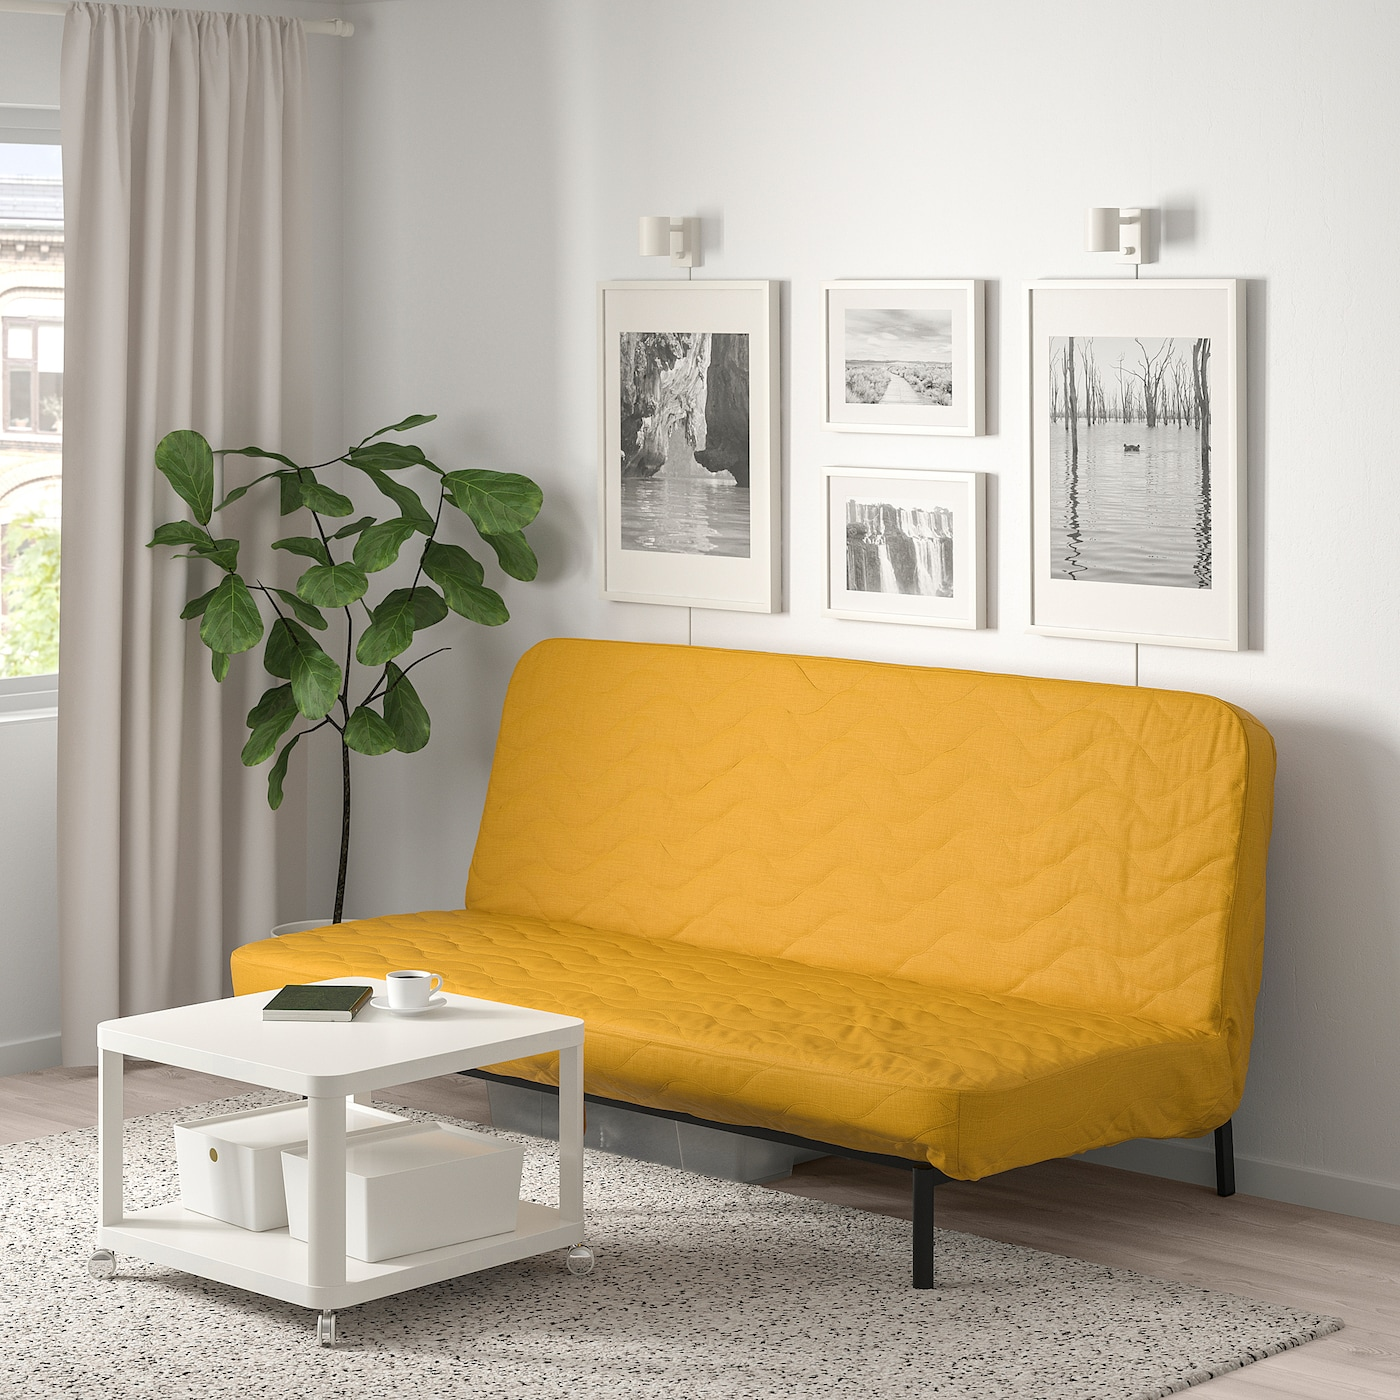 Sofa bed with a bright yellow cover